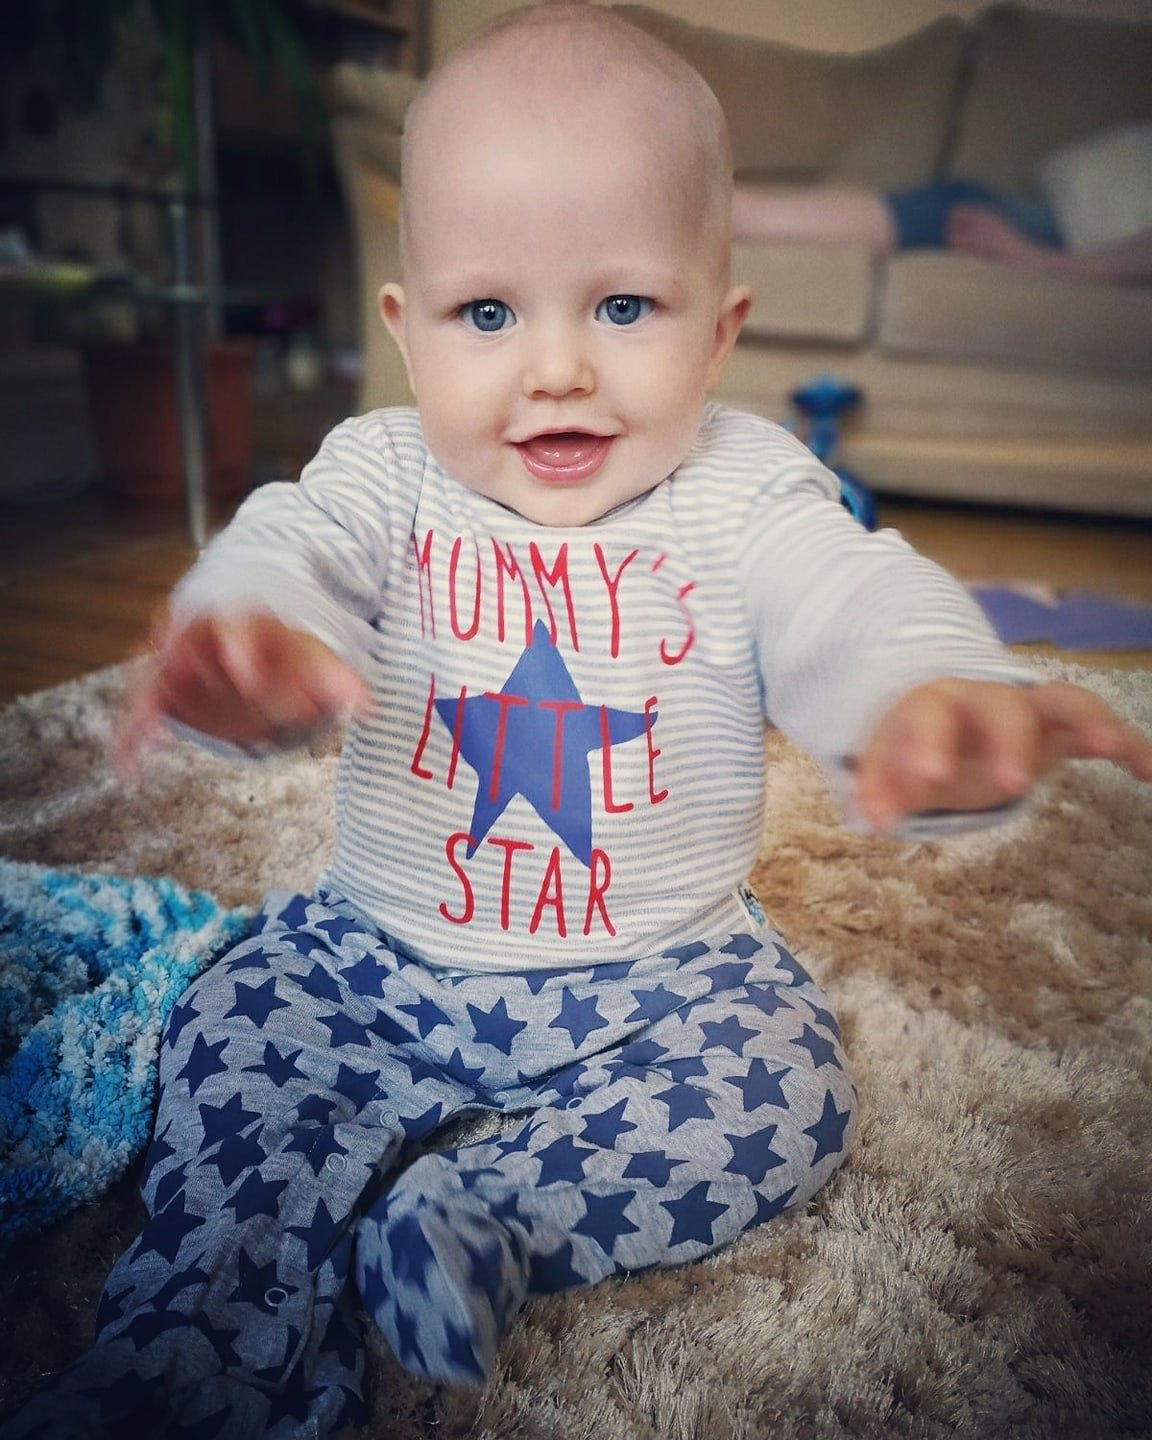 Girls Mummy/'s Little Star Anti-Slip All-in-One Sleepsuit for Babies Unique Patent Baby Onesie for Toddlers Safety Grip Special Design Babygrow 6-9 Months Plus Free Pair of Anti-Slip Socks